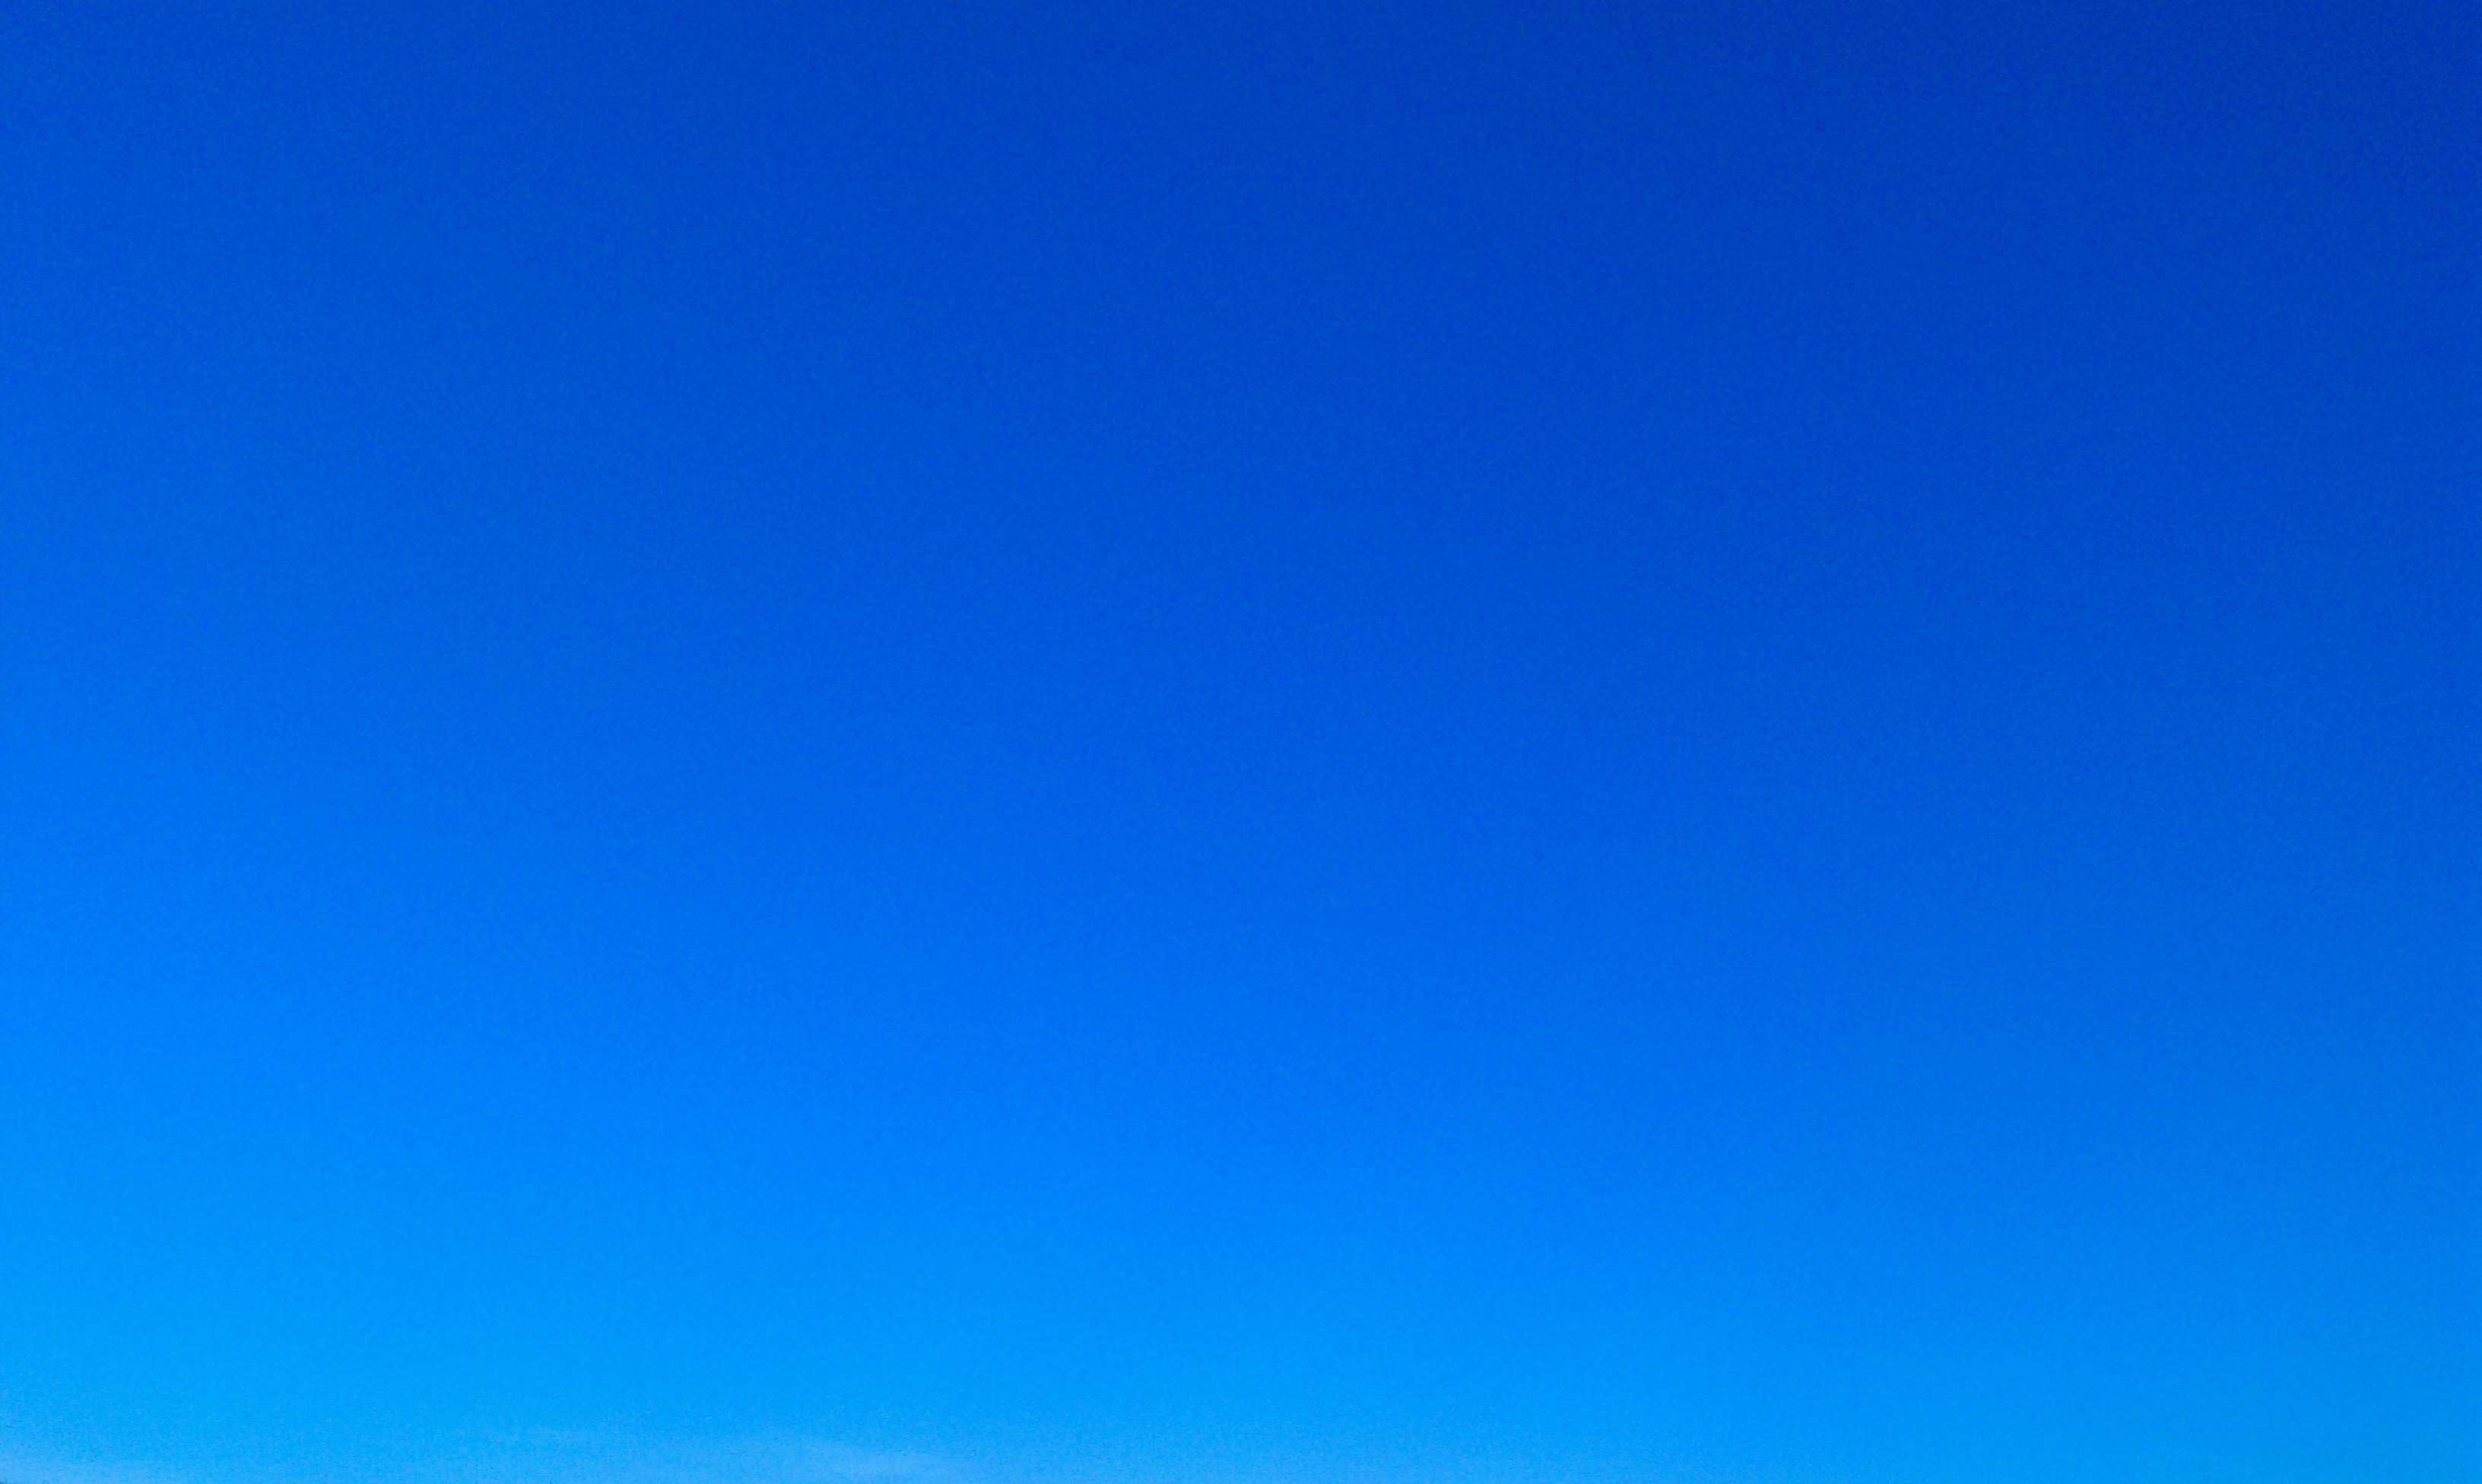 3264x1952  Blue Sky wallpapers hd. 71 · Download · Res: 2560x1600 ...